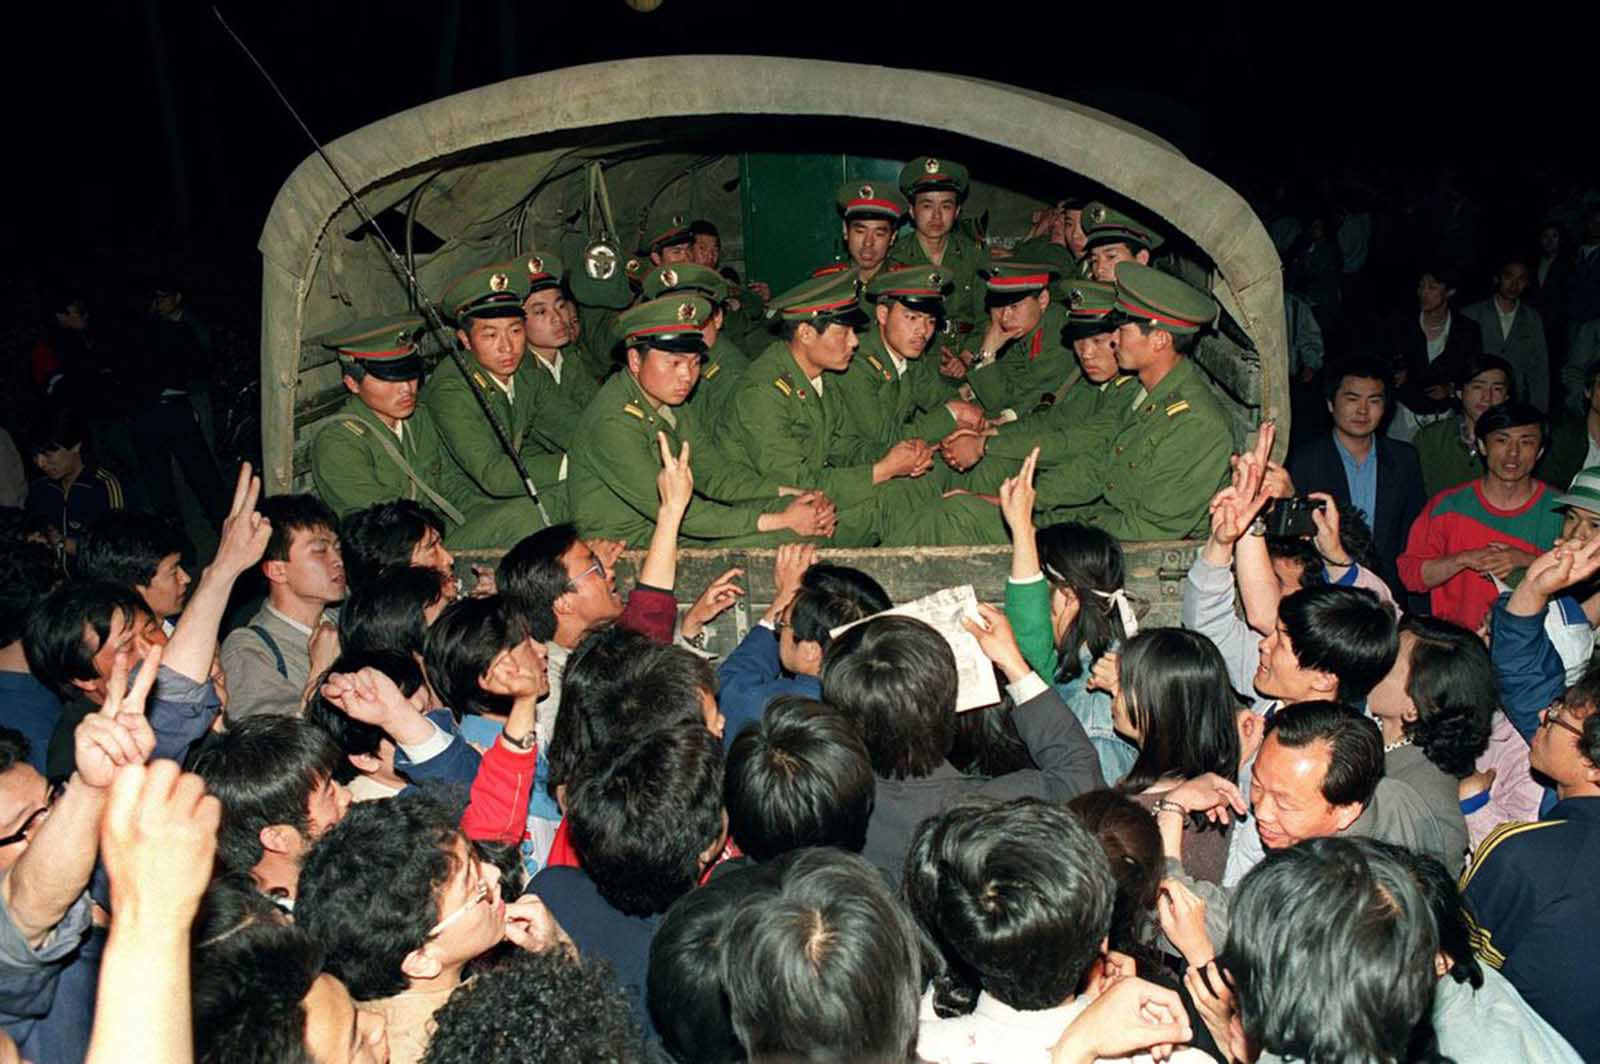 Pro-democracy demonstrators raise their fists and flash the victory sign in Beijing while stopping a military truck filled with soldiers on its way to Tiananmen Square on the day when then Prime Minister Li Peng declared Martial Law, May 20, 1989.